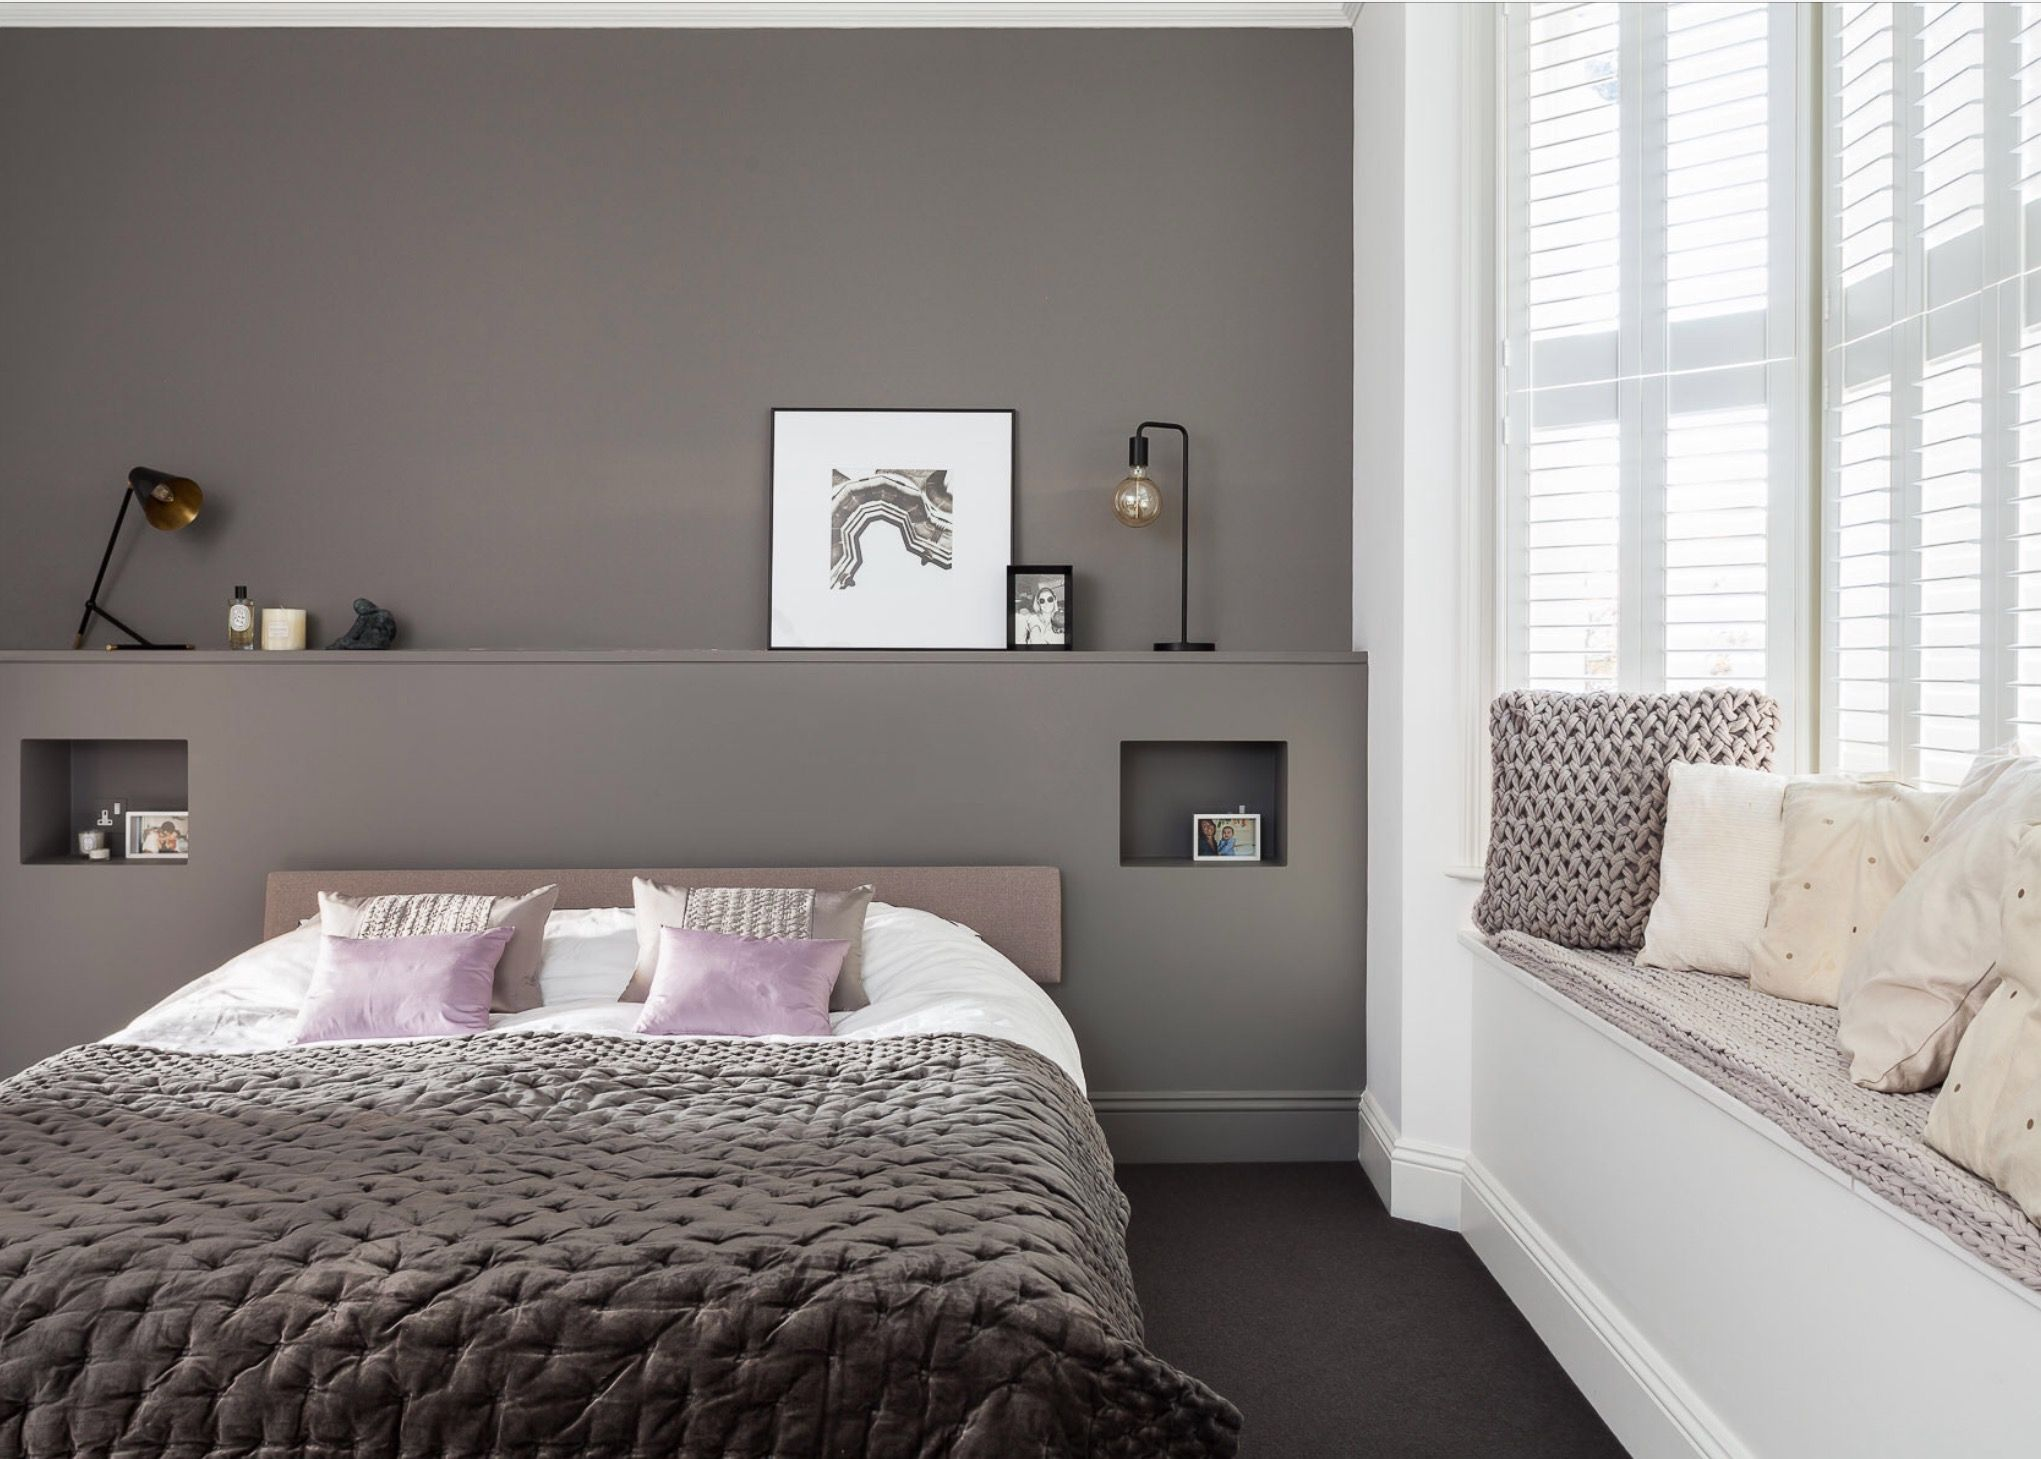 4 master bedroom house  Pin by Tom Simpson on My life  Pinterest  Master bedroom and Bedrooms